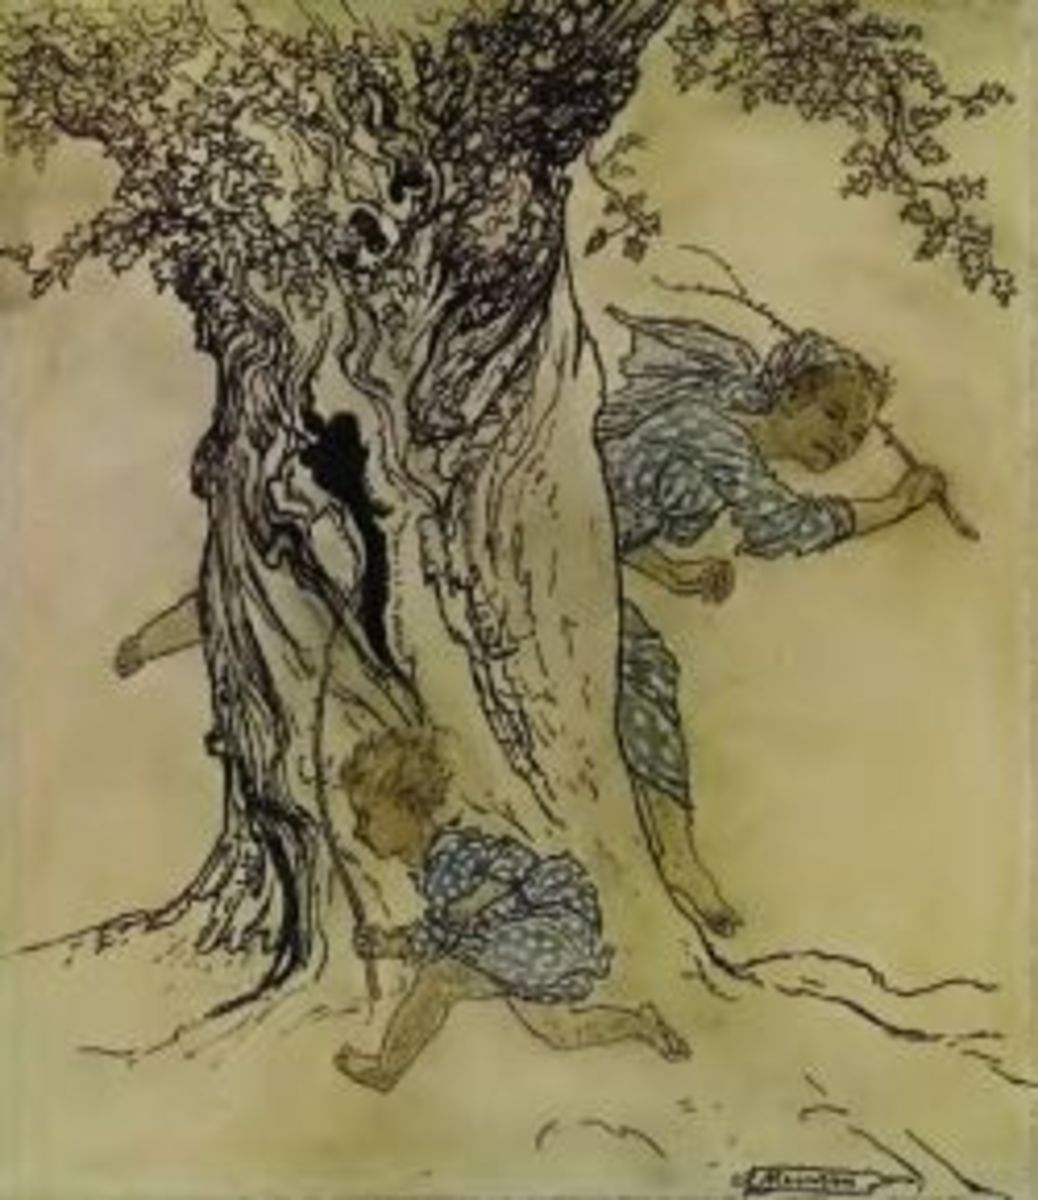 Scene from Childhood, one of Irish Fairy Tales, illustrated by Rackham